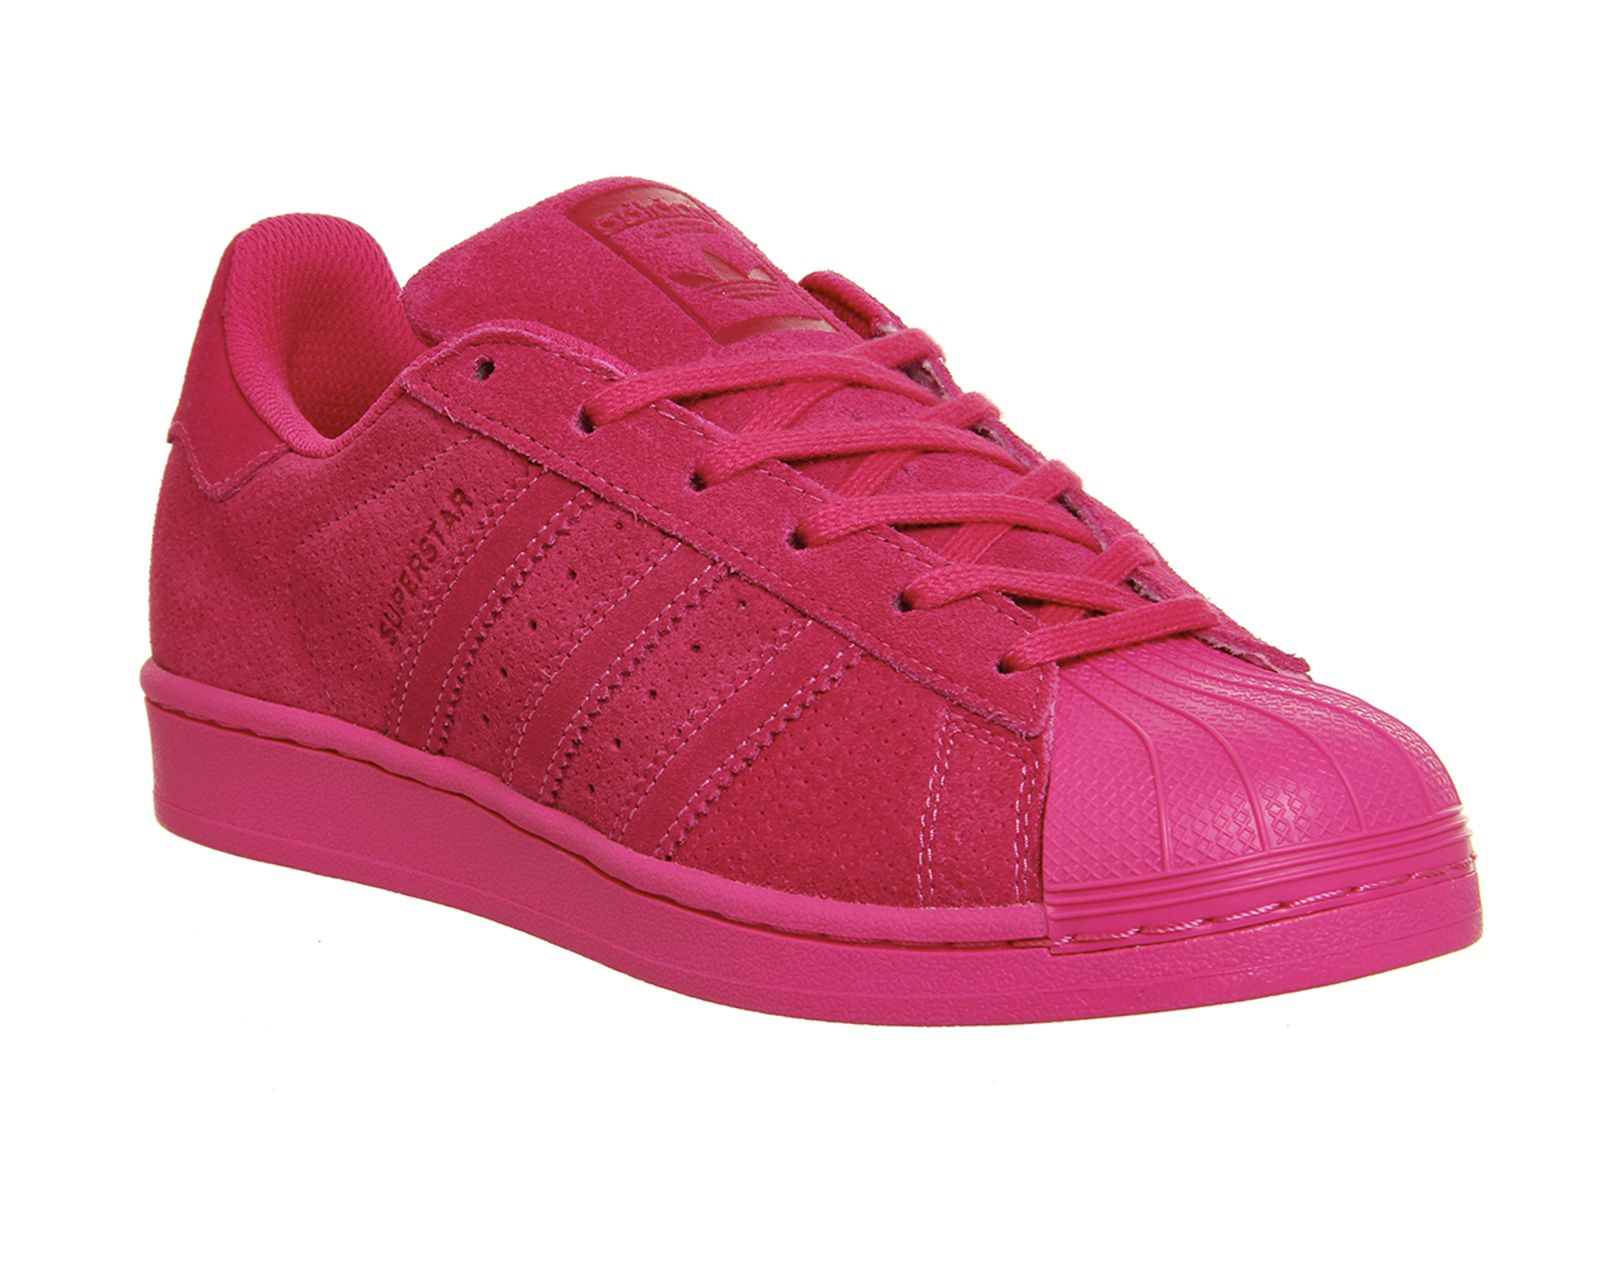 0d3ec1583ee7 Buy Eqt Pink Mono Adidas Superstar 1 from OFFICE.co.uk. gorgeous hot pink  versions of the shell tops - order from Office in the UK